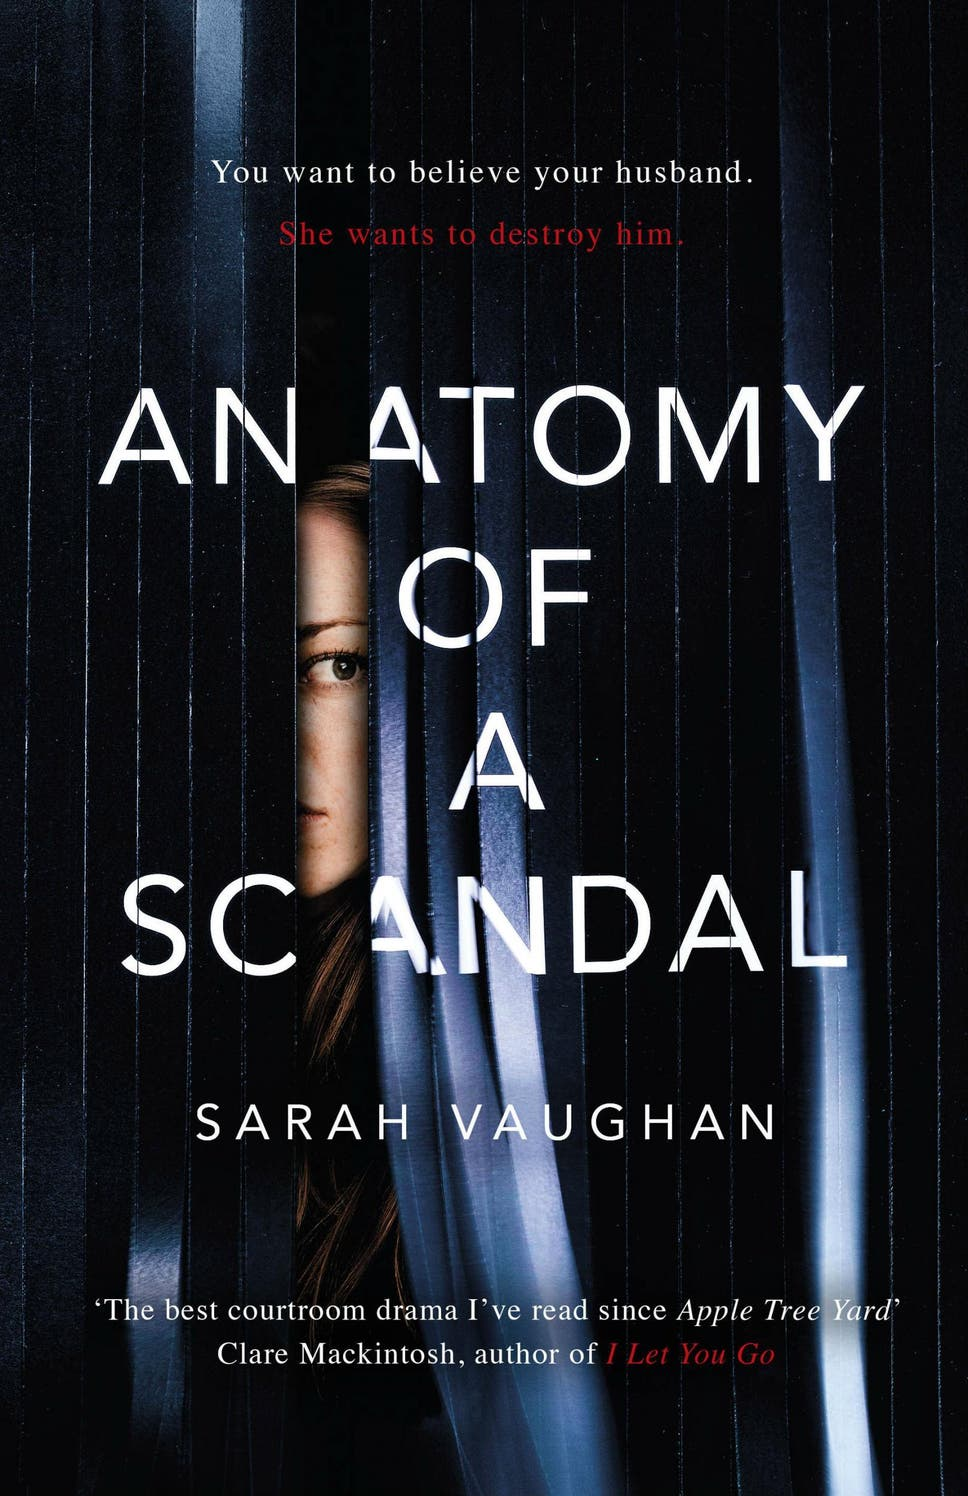 Anatomy of a Scandal by Sarah Vaughan, book review: Hyped ...